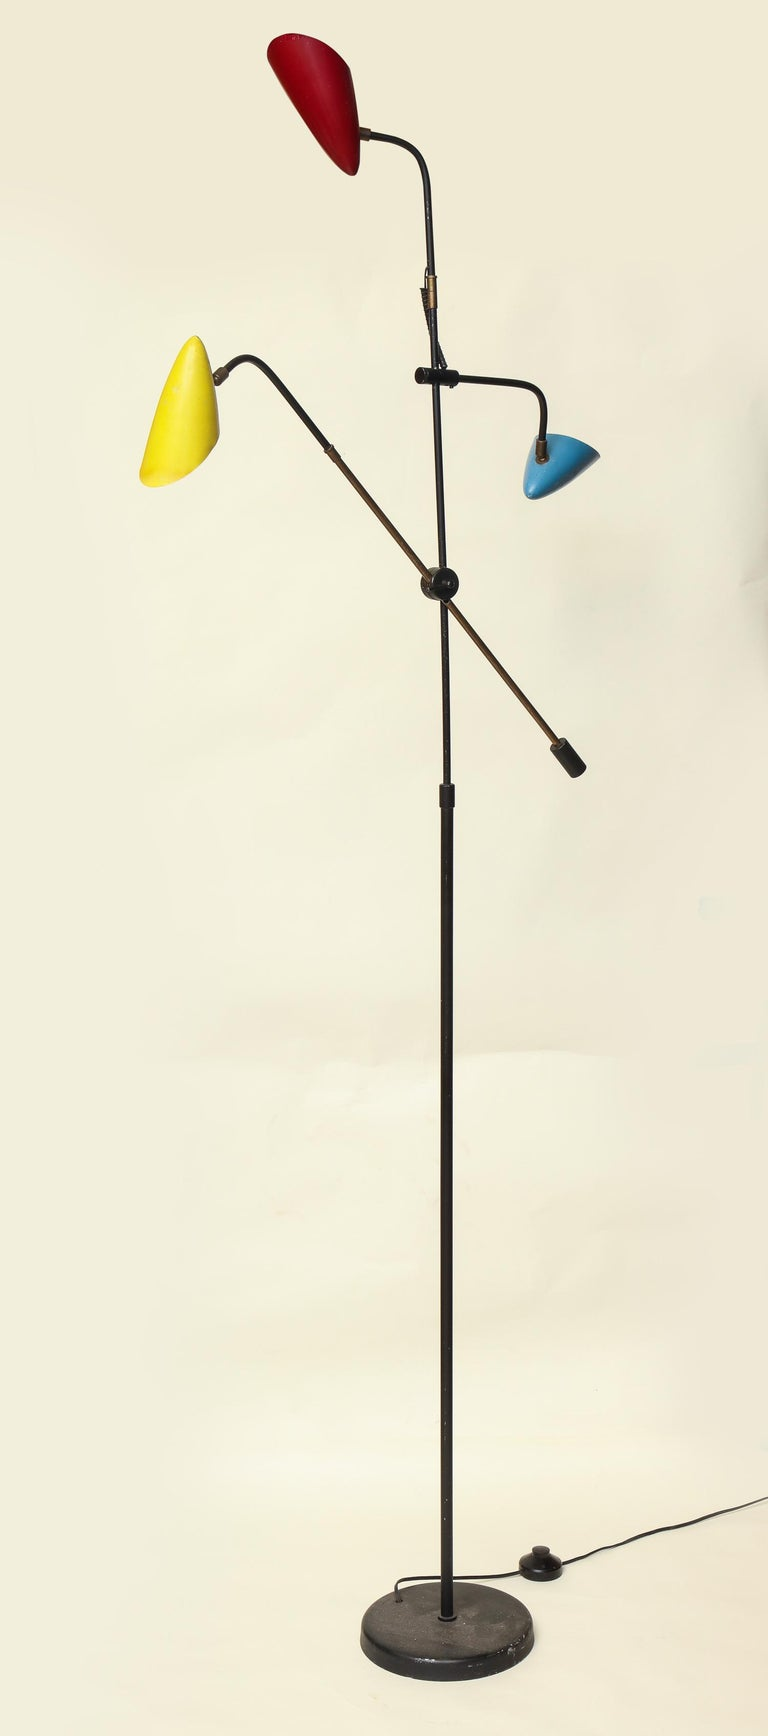 Metal Floor Lamp Articulated Sculptural Mid-Century Modern, France, 1950s For Sale